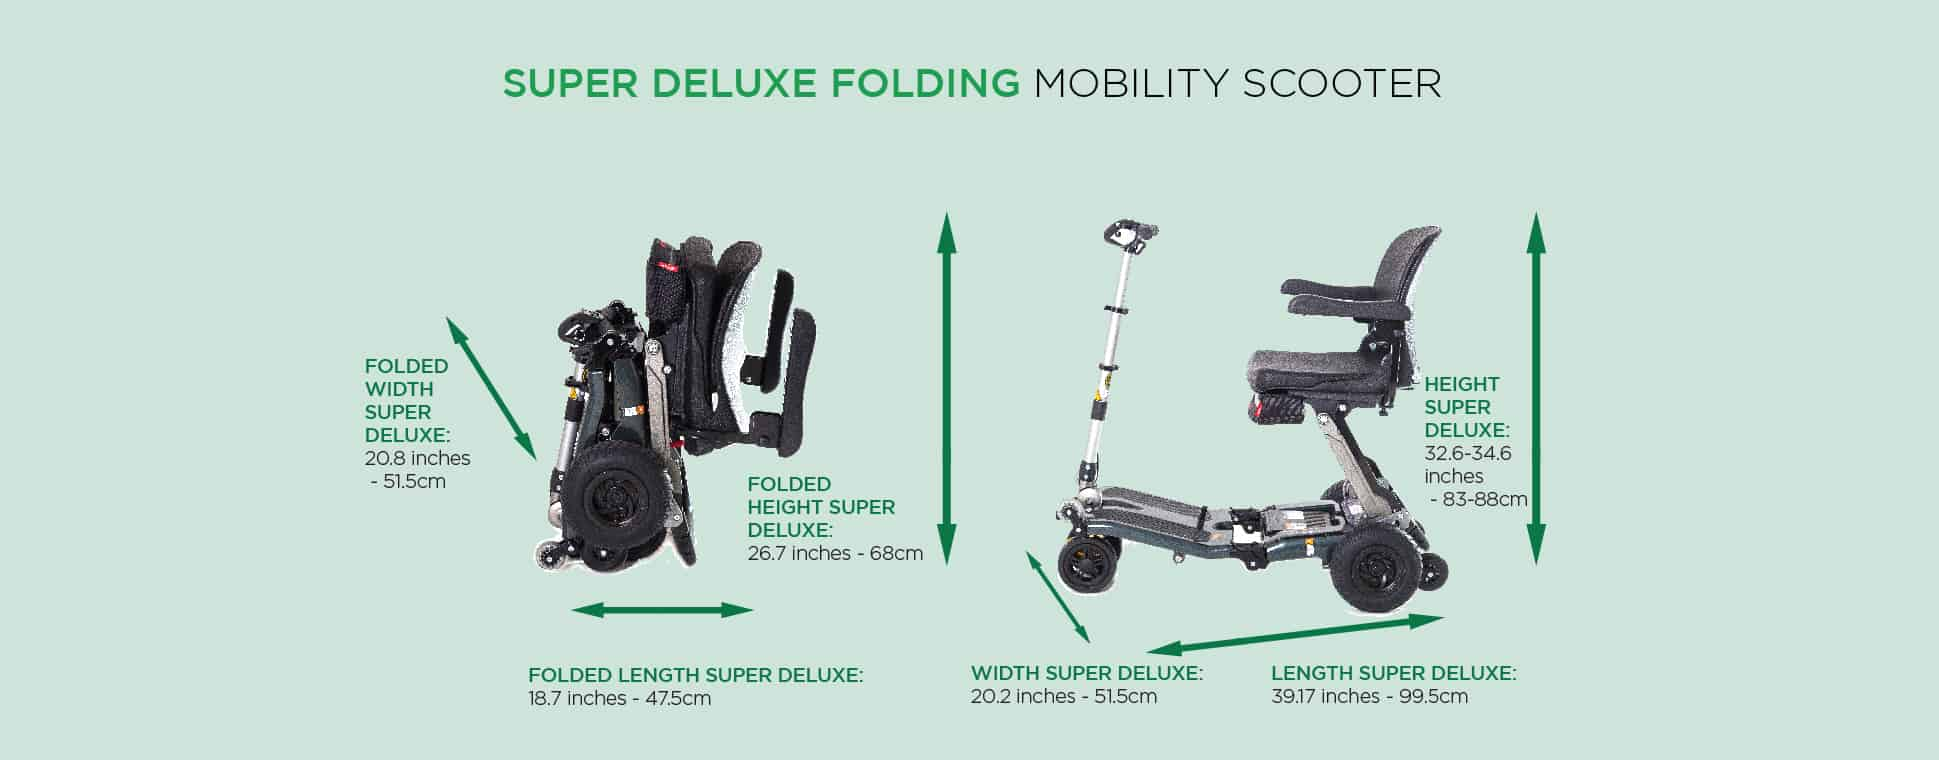 Super deluxe Mobility scooter